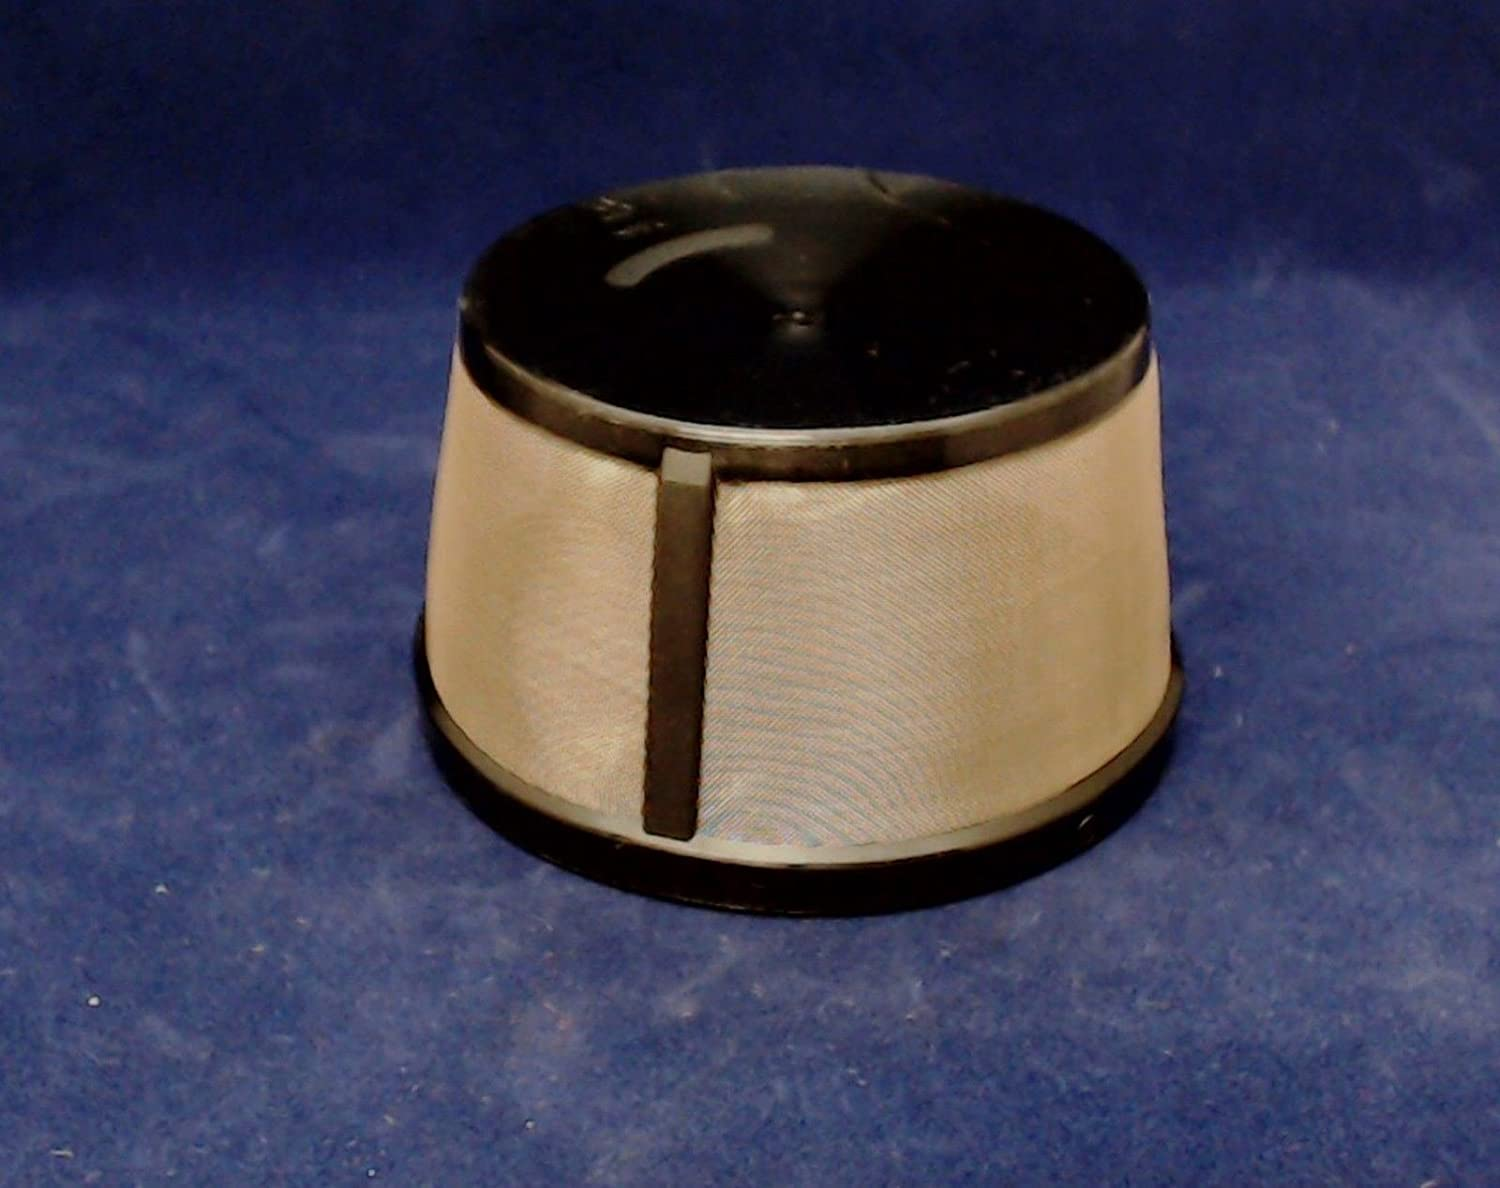 6659 - 4 Cup Permanent Gold Filter for Mr. Coffee**